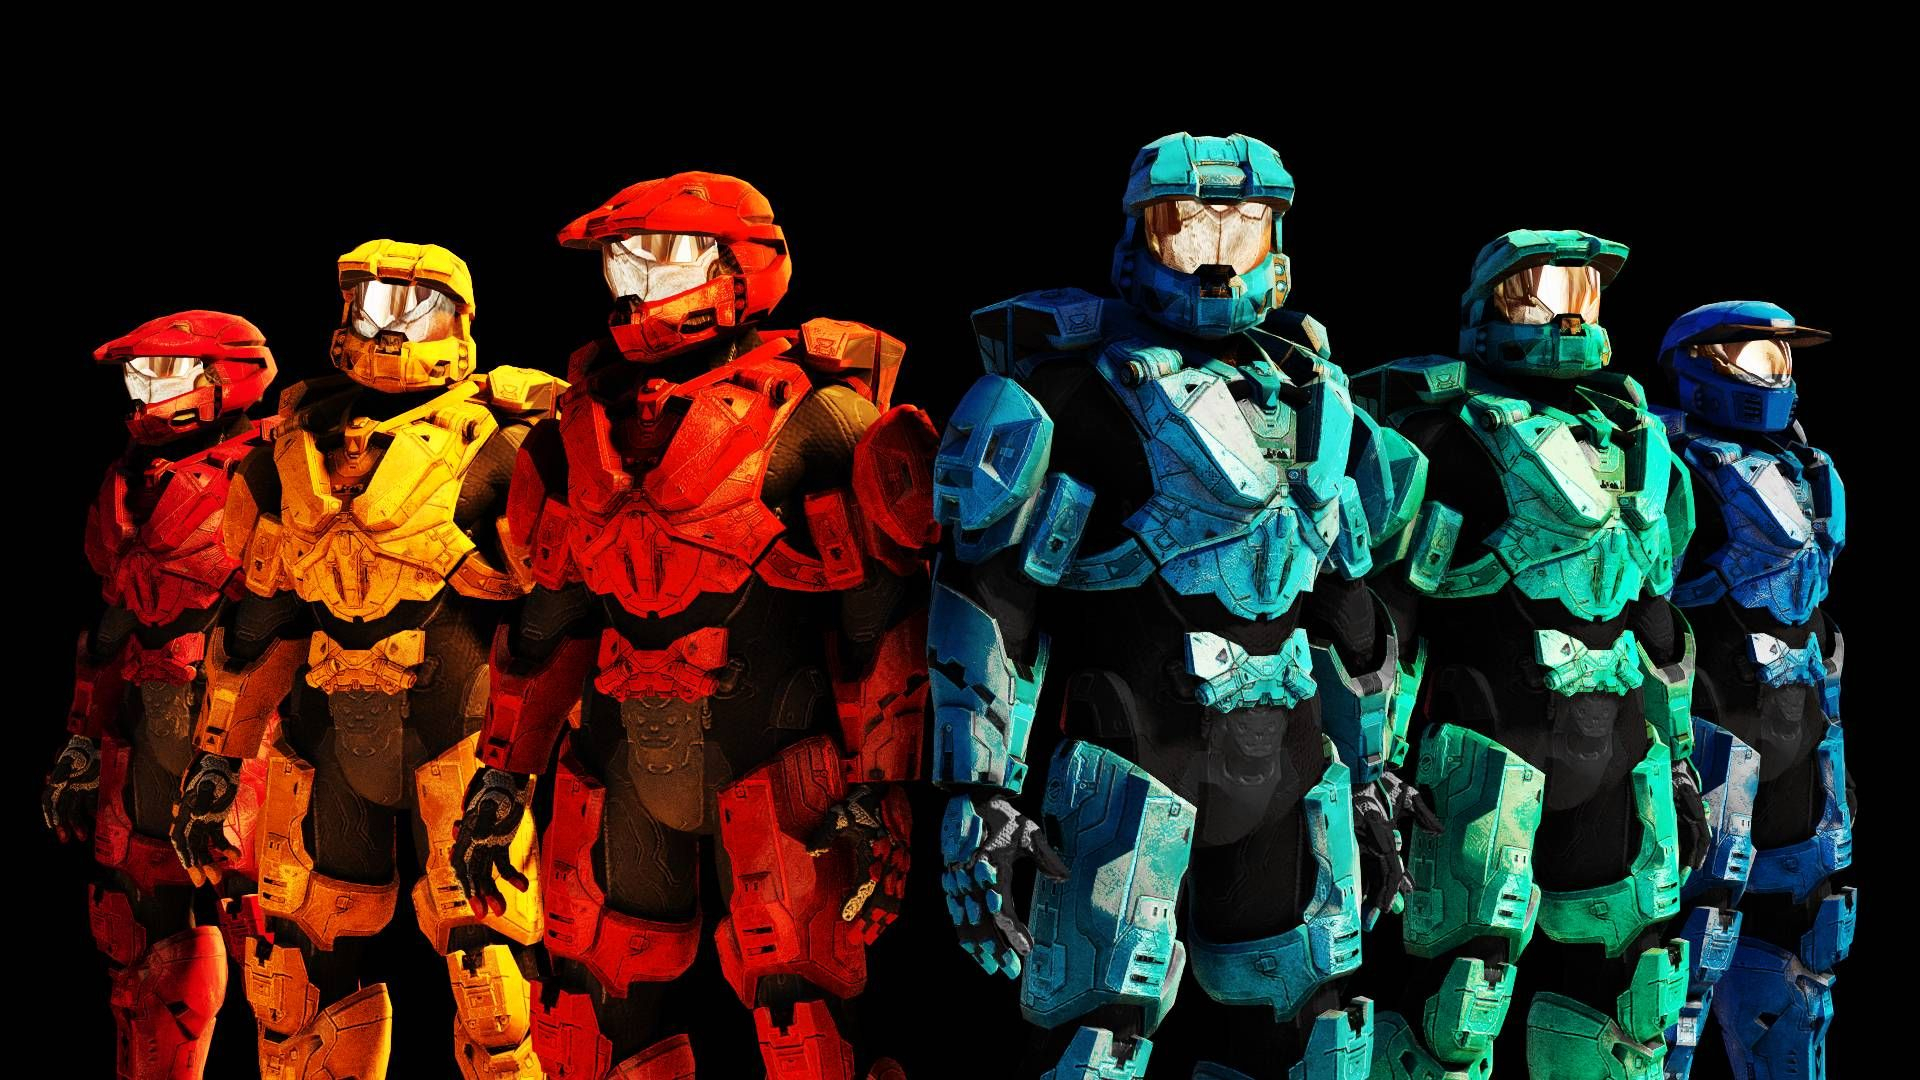 red vs. blue (1920x1080) : wallpapers | cool wallpapers | red vs